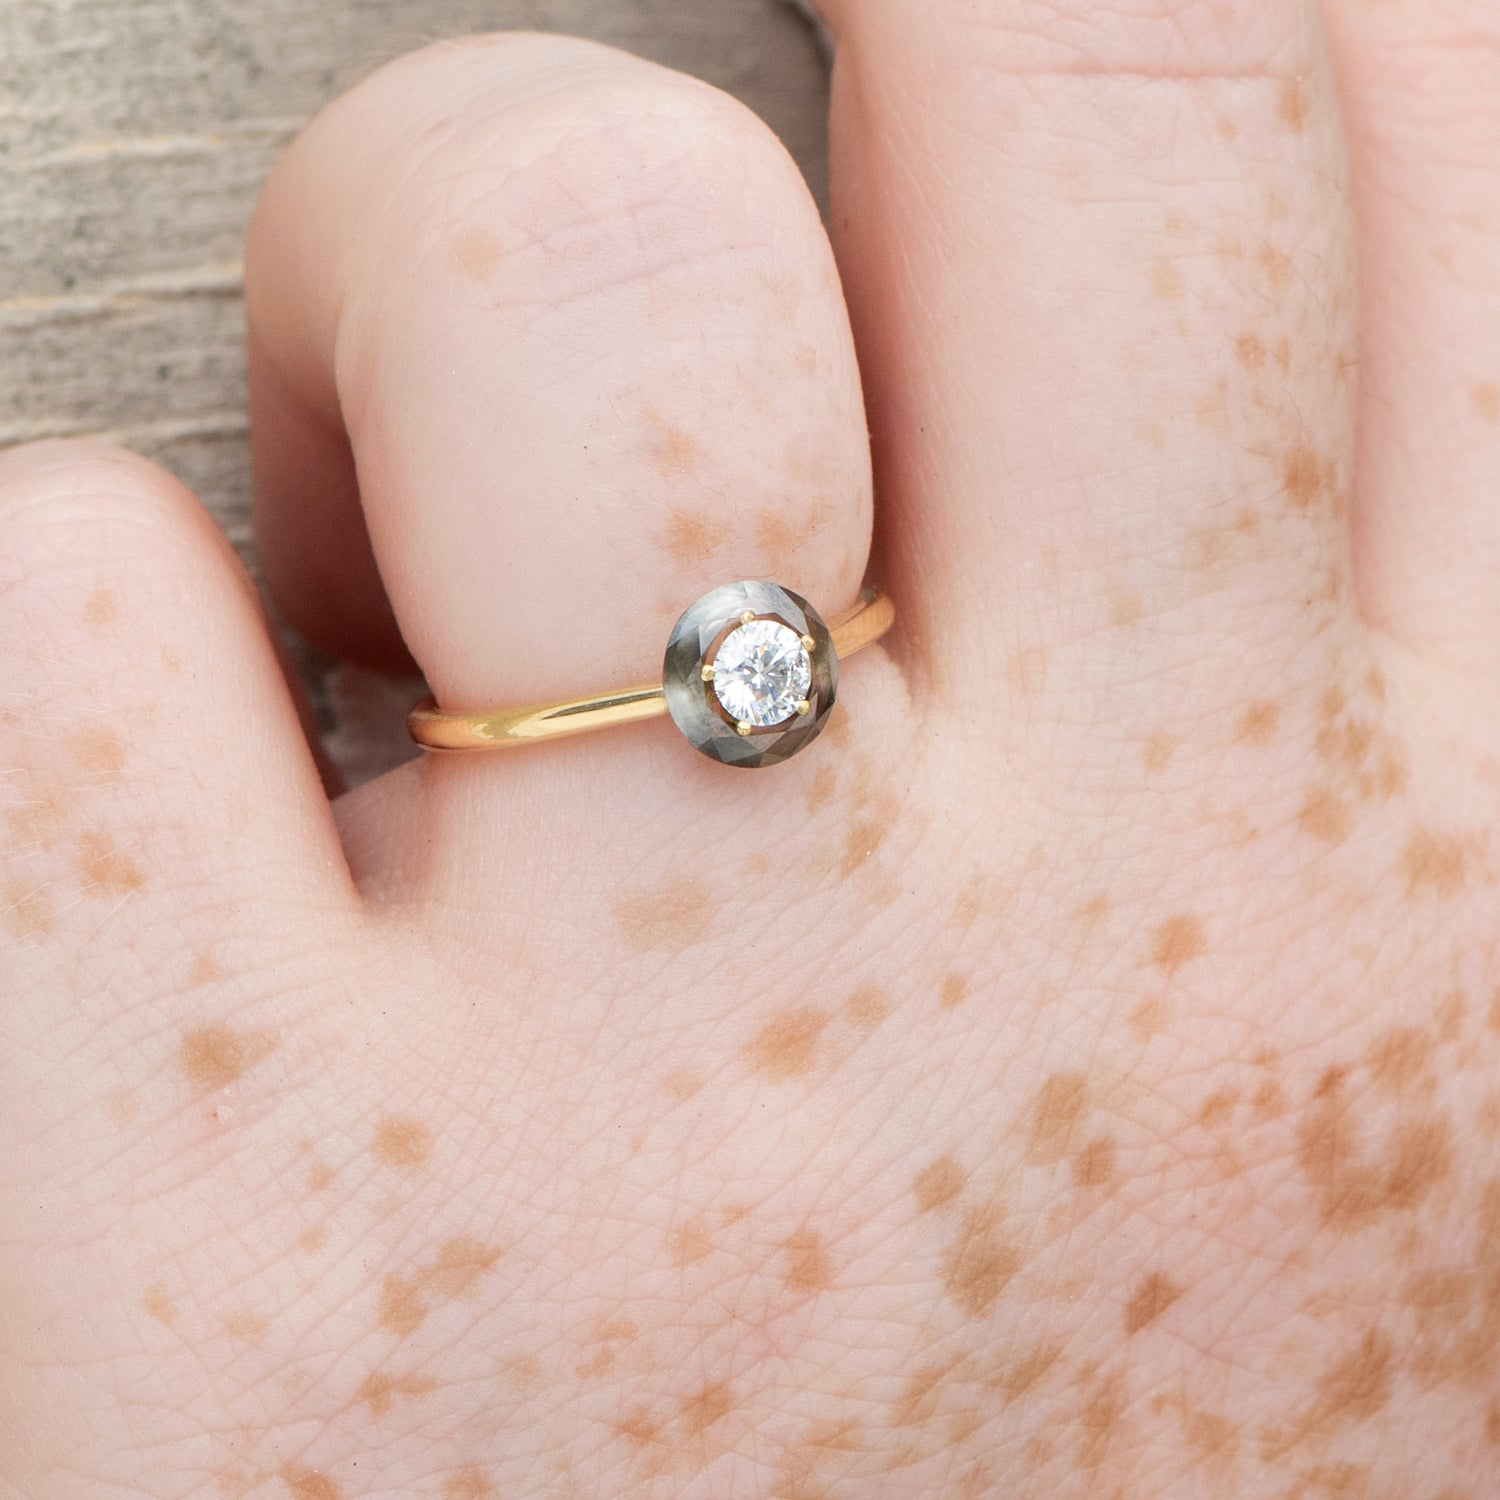 Diamond-Sphere-Engagement-Ring-OOAK-in-set-closeup-moment